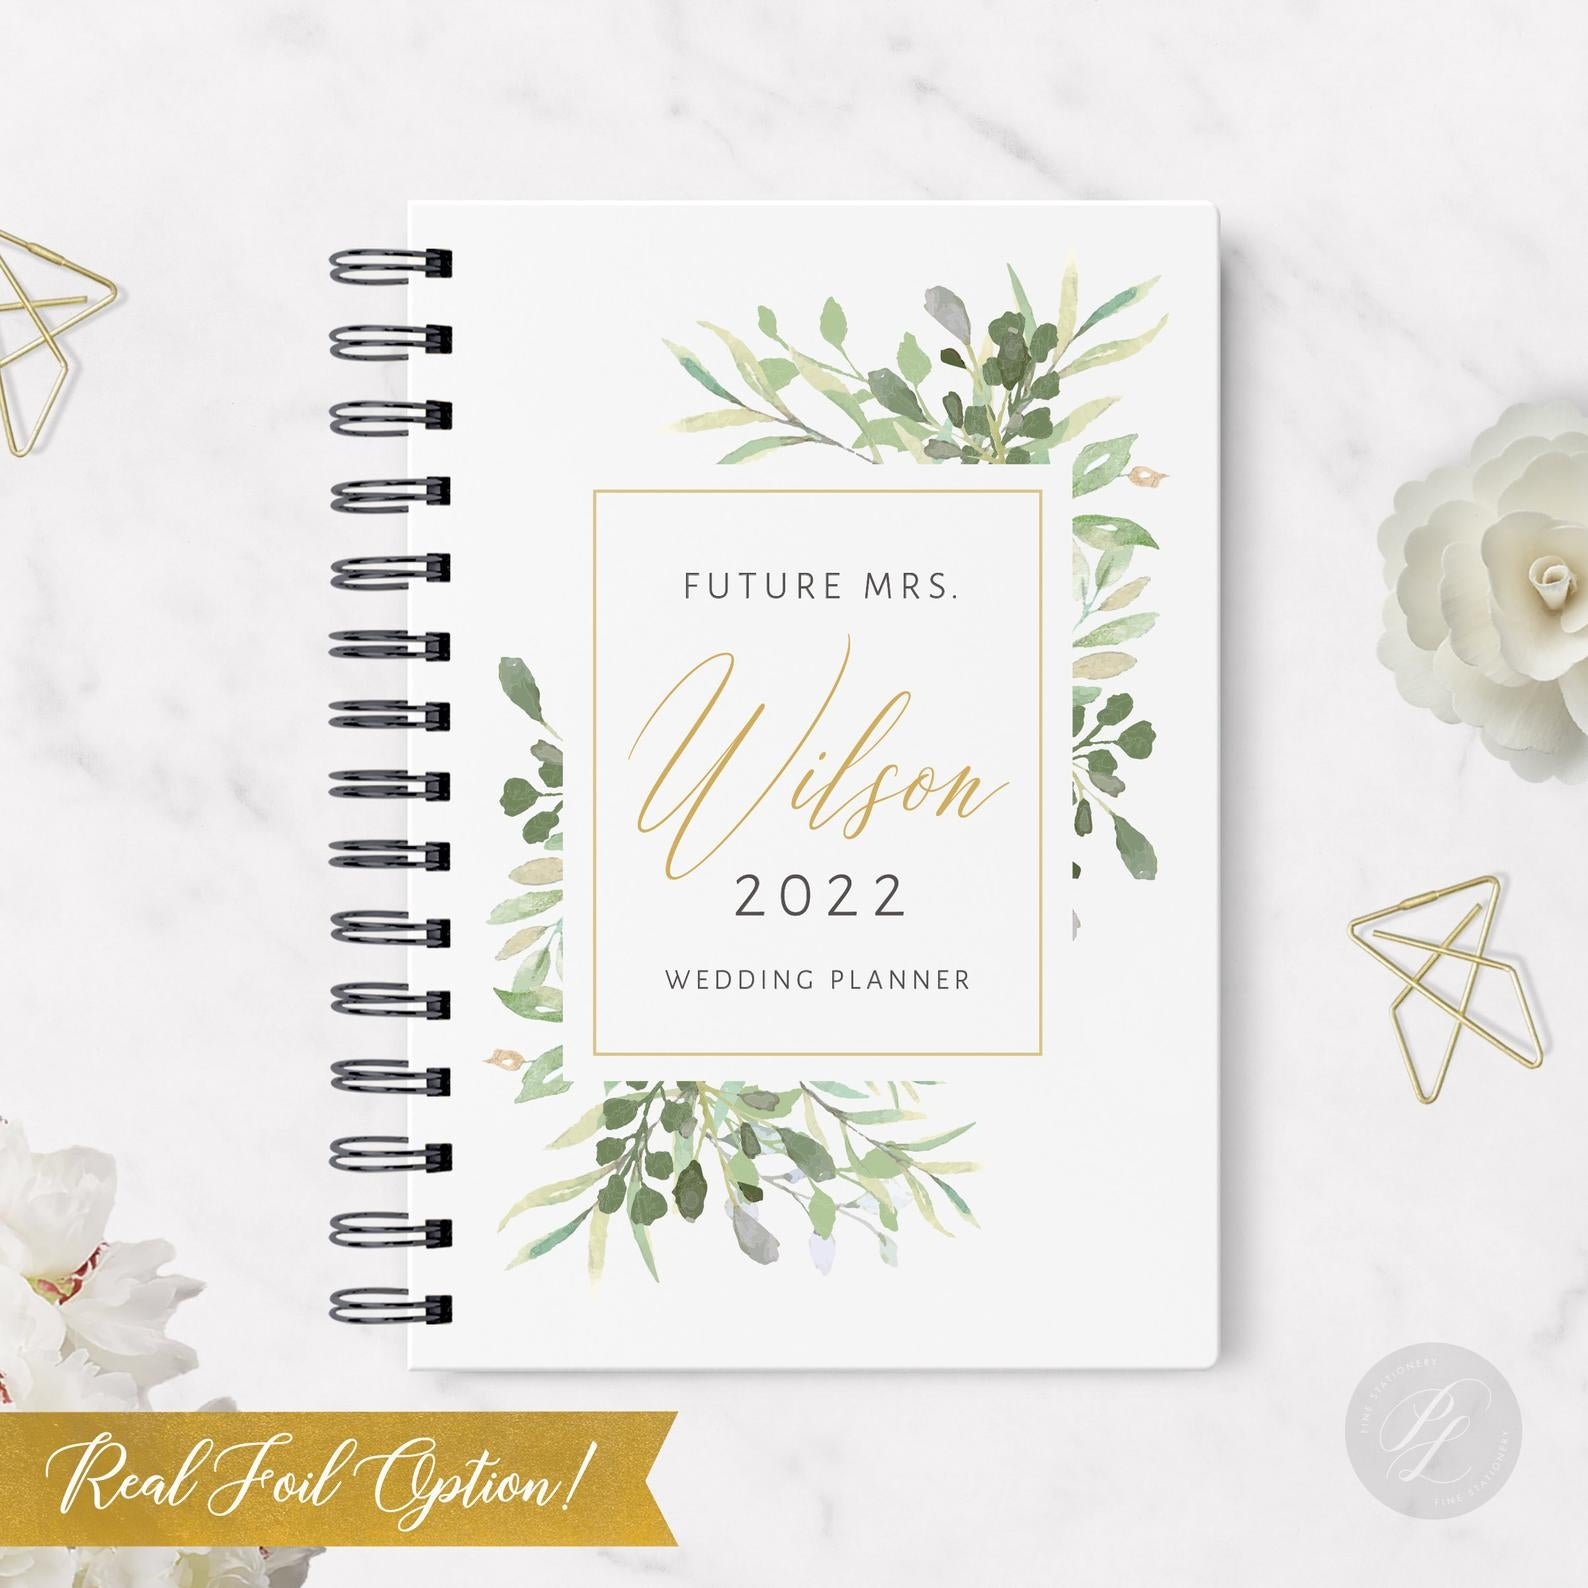 Greenery Wedding Planner - Rustic Wedding Planner - Gold Foil Wedding Planner